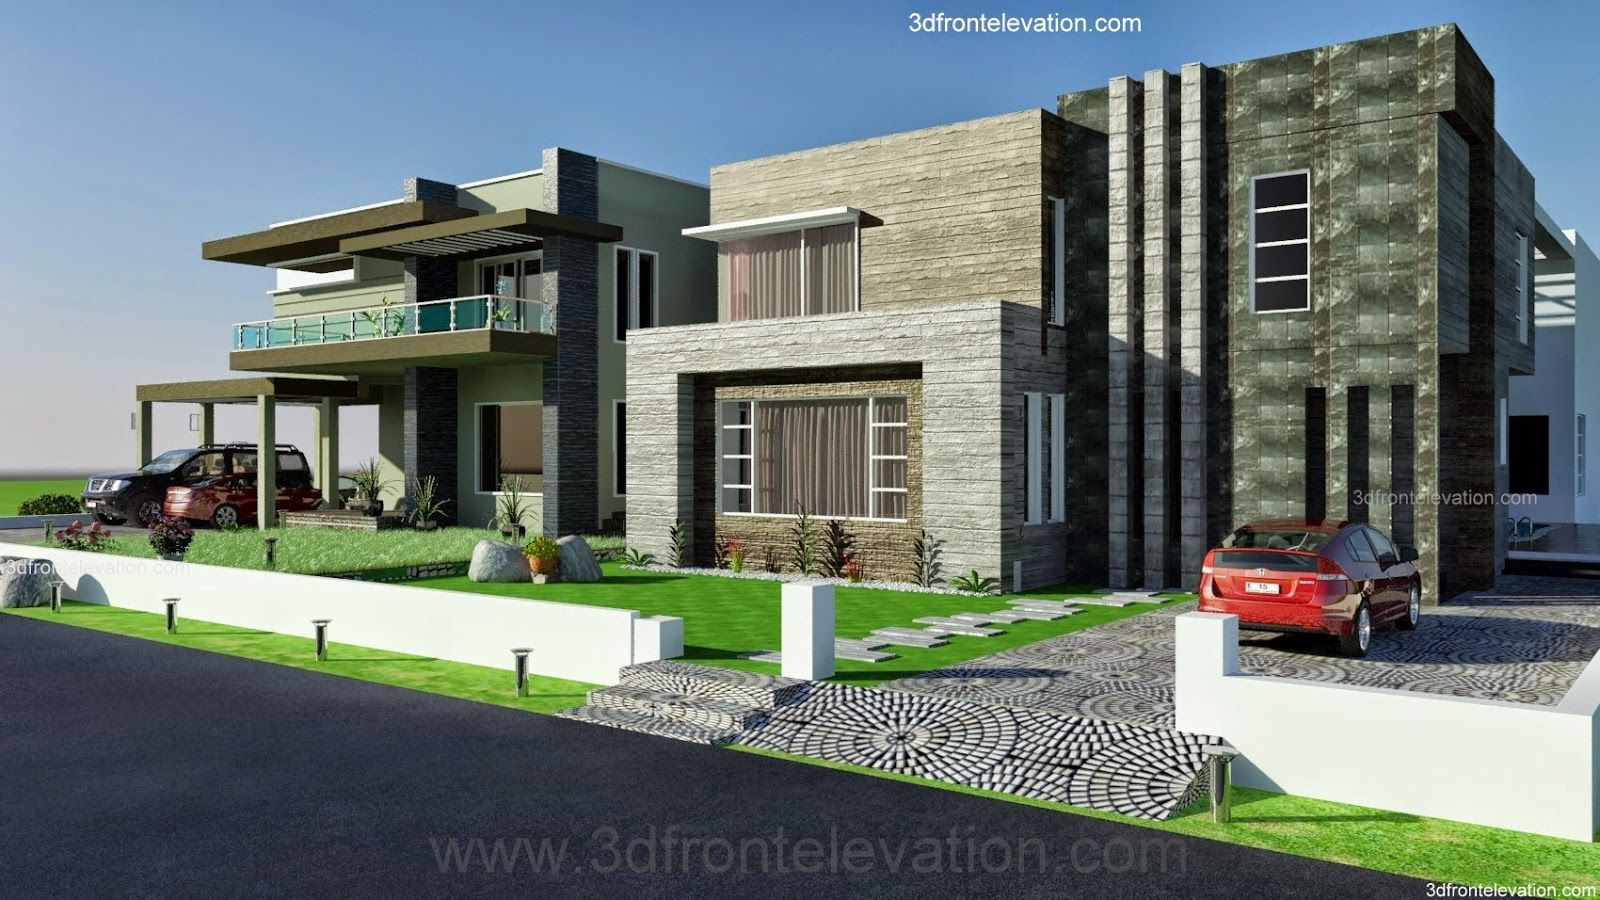 House design karachi - 3d Front Elevation Com 2 2 Kanal Dha Karachi Modern Contemporary House Design